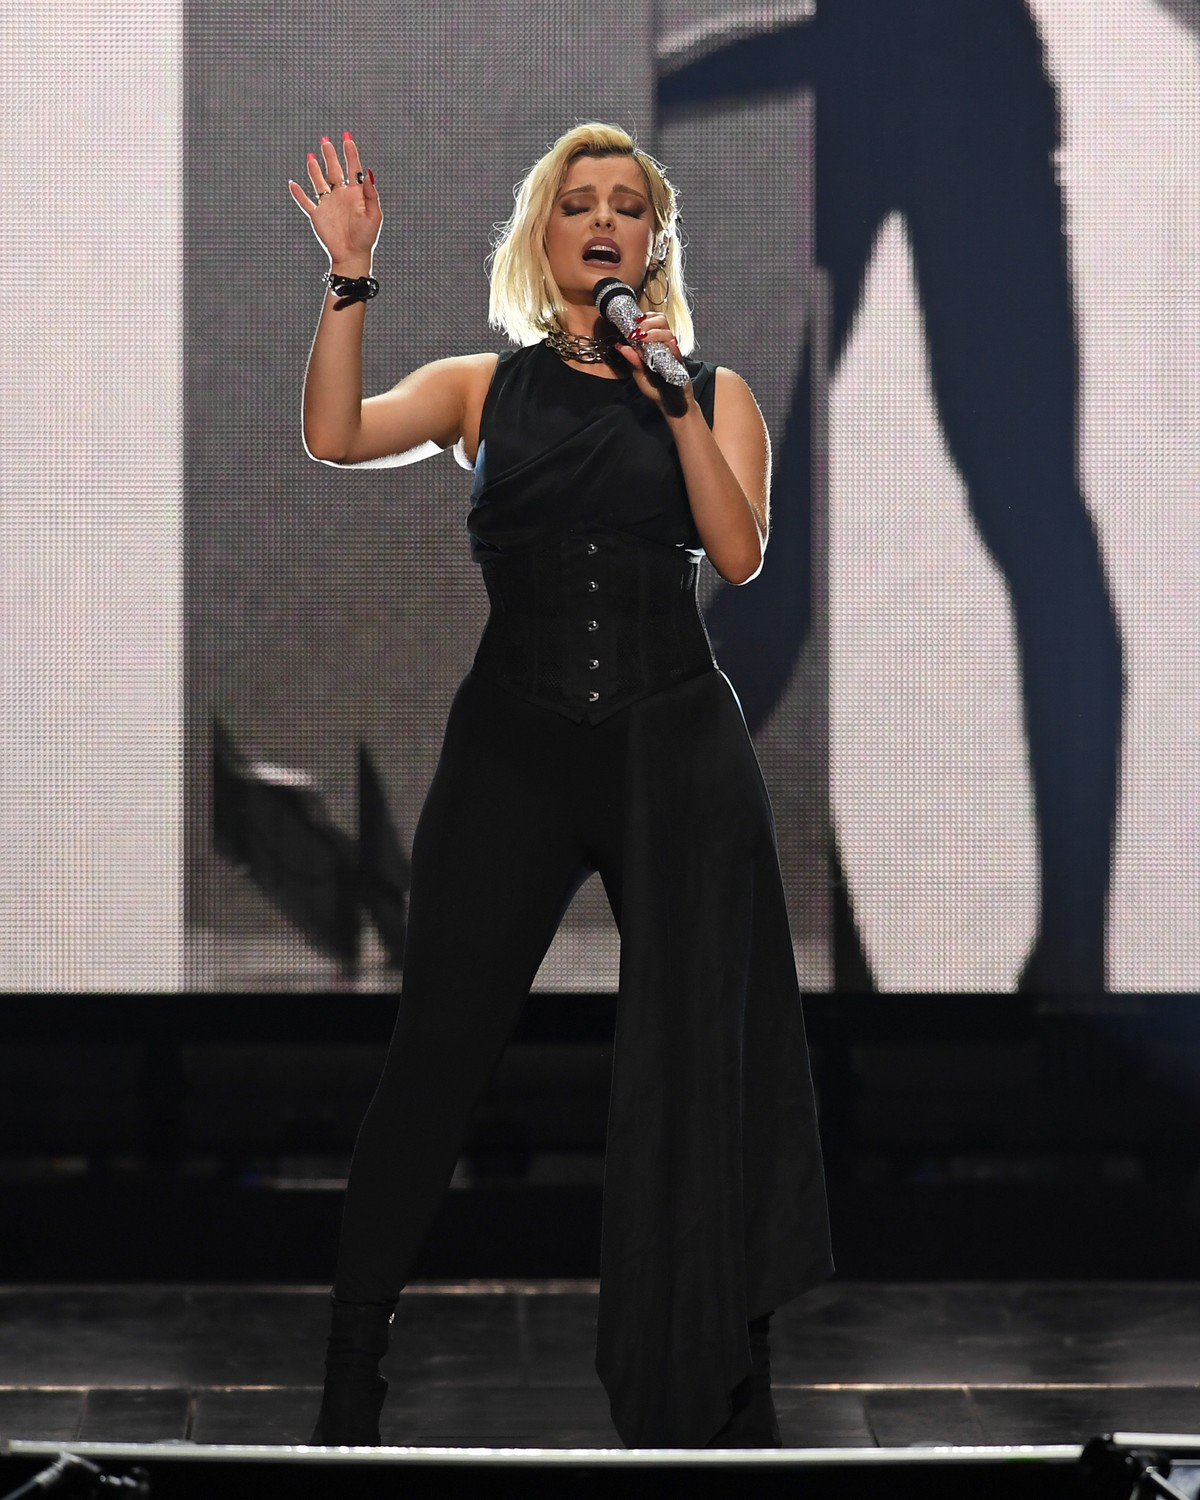 Bebe Rexha performs at the BB&T Center in Sunrise 2019/11/15 8